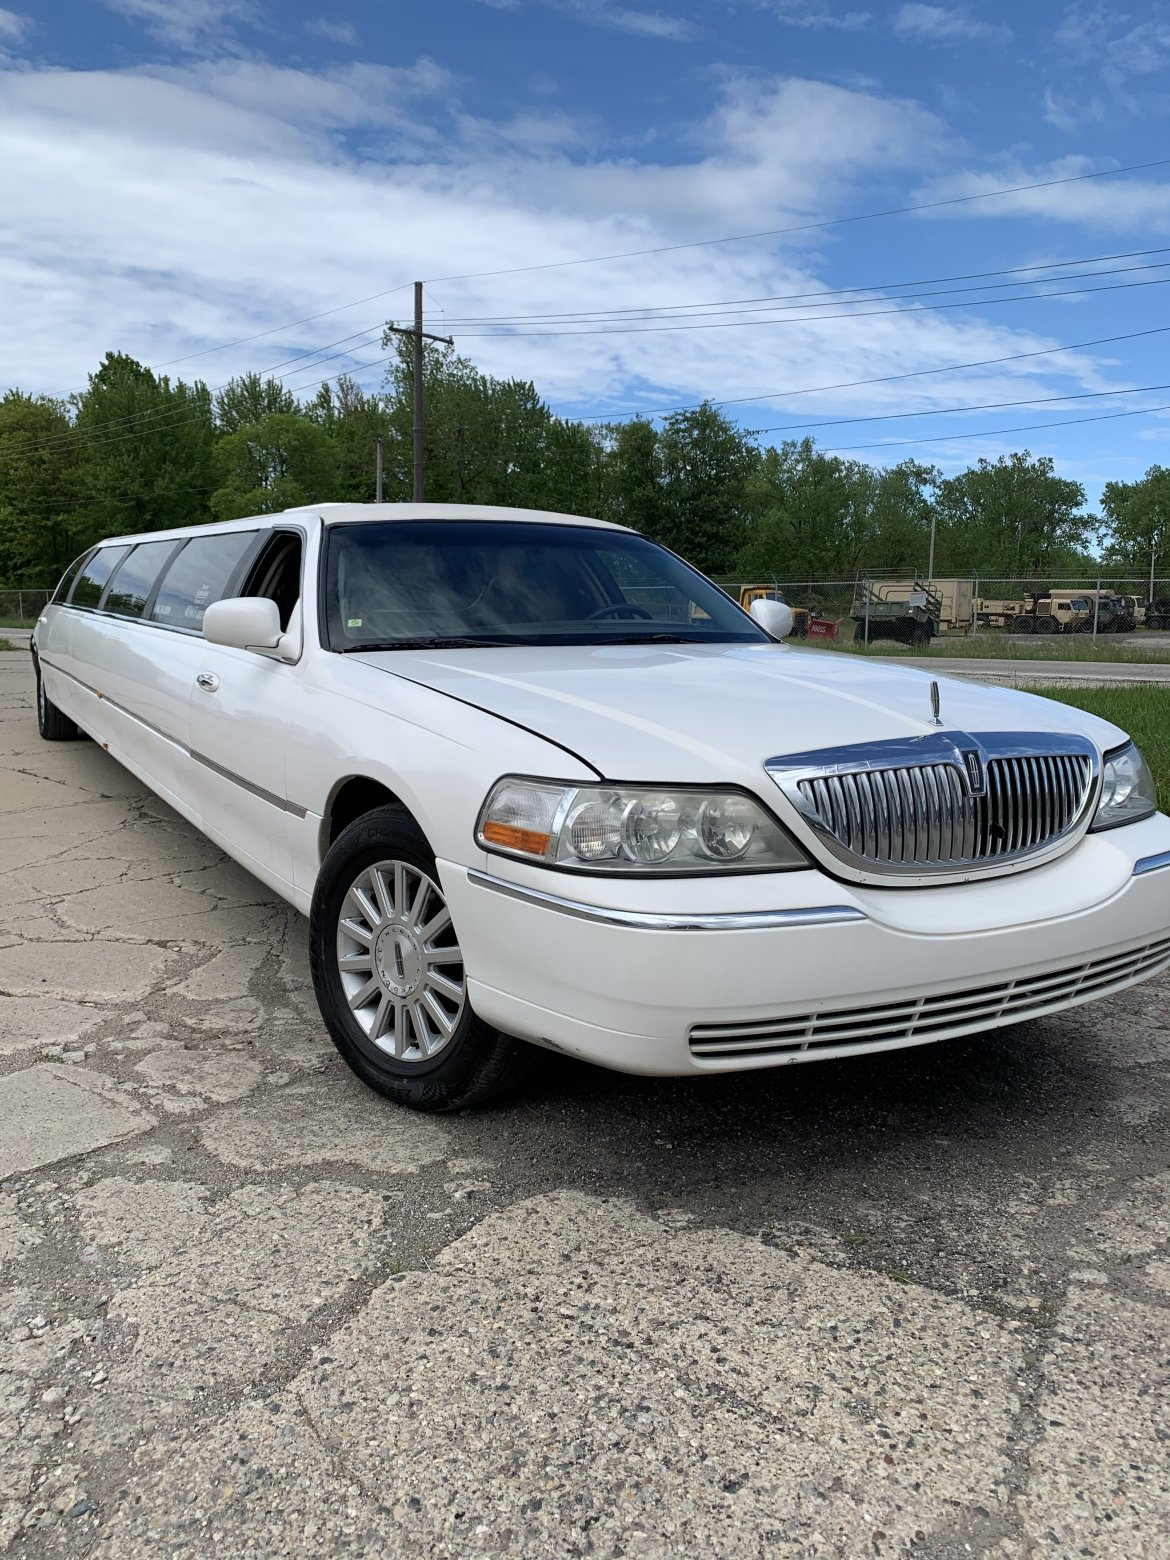 Limousine for sale: 2005 Lincoln Town Car 180""